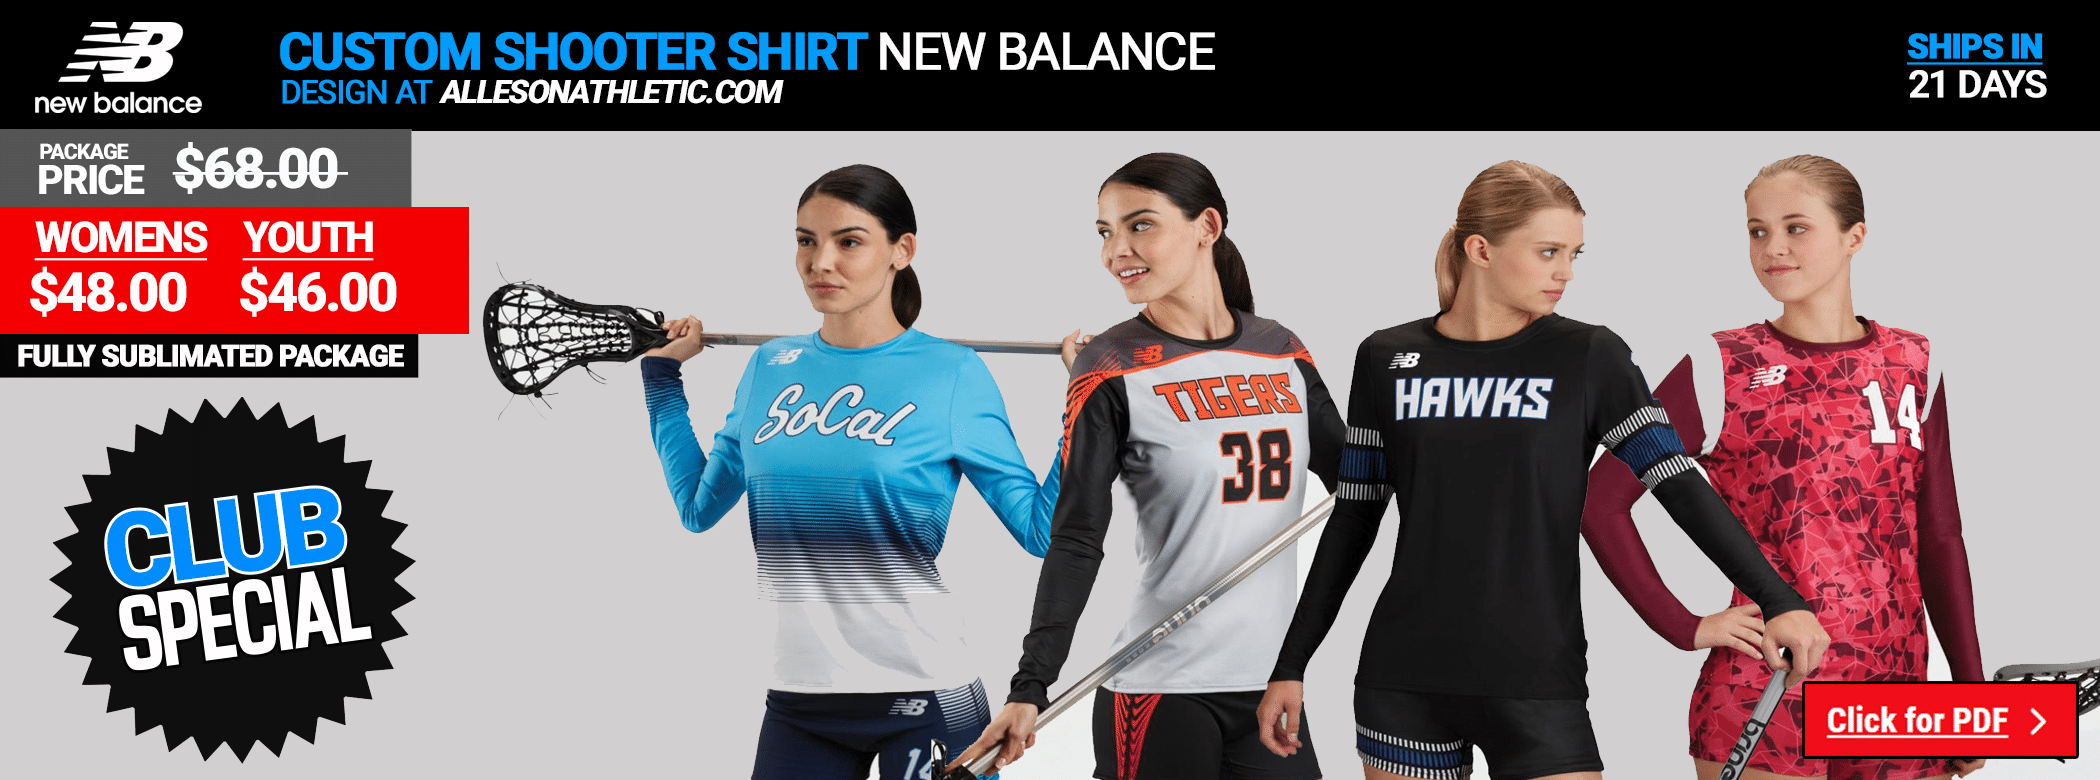 New Balance Ladies Shooters Top - Lacrosse